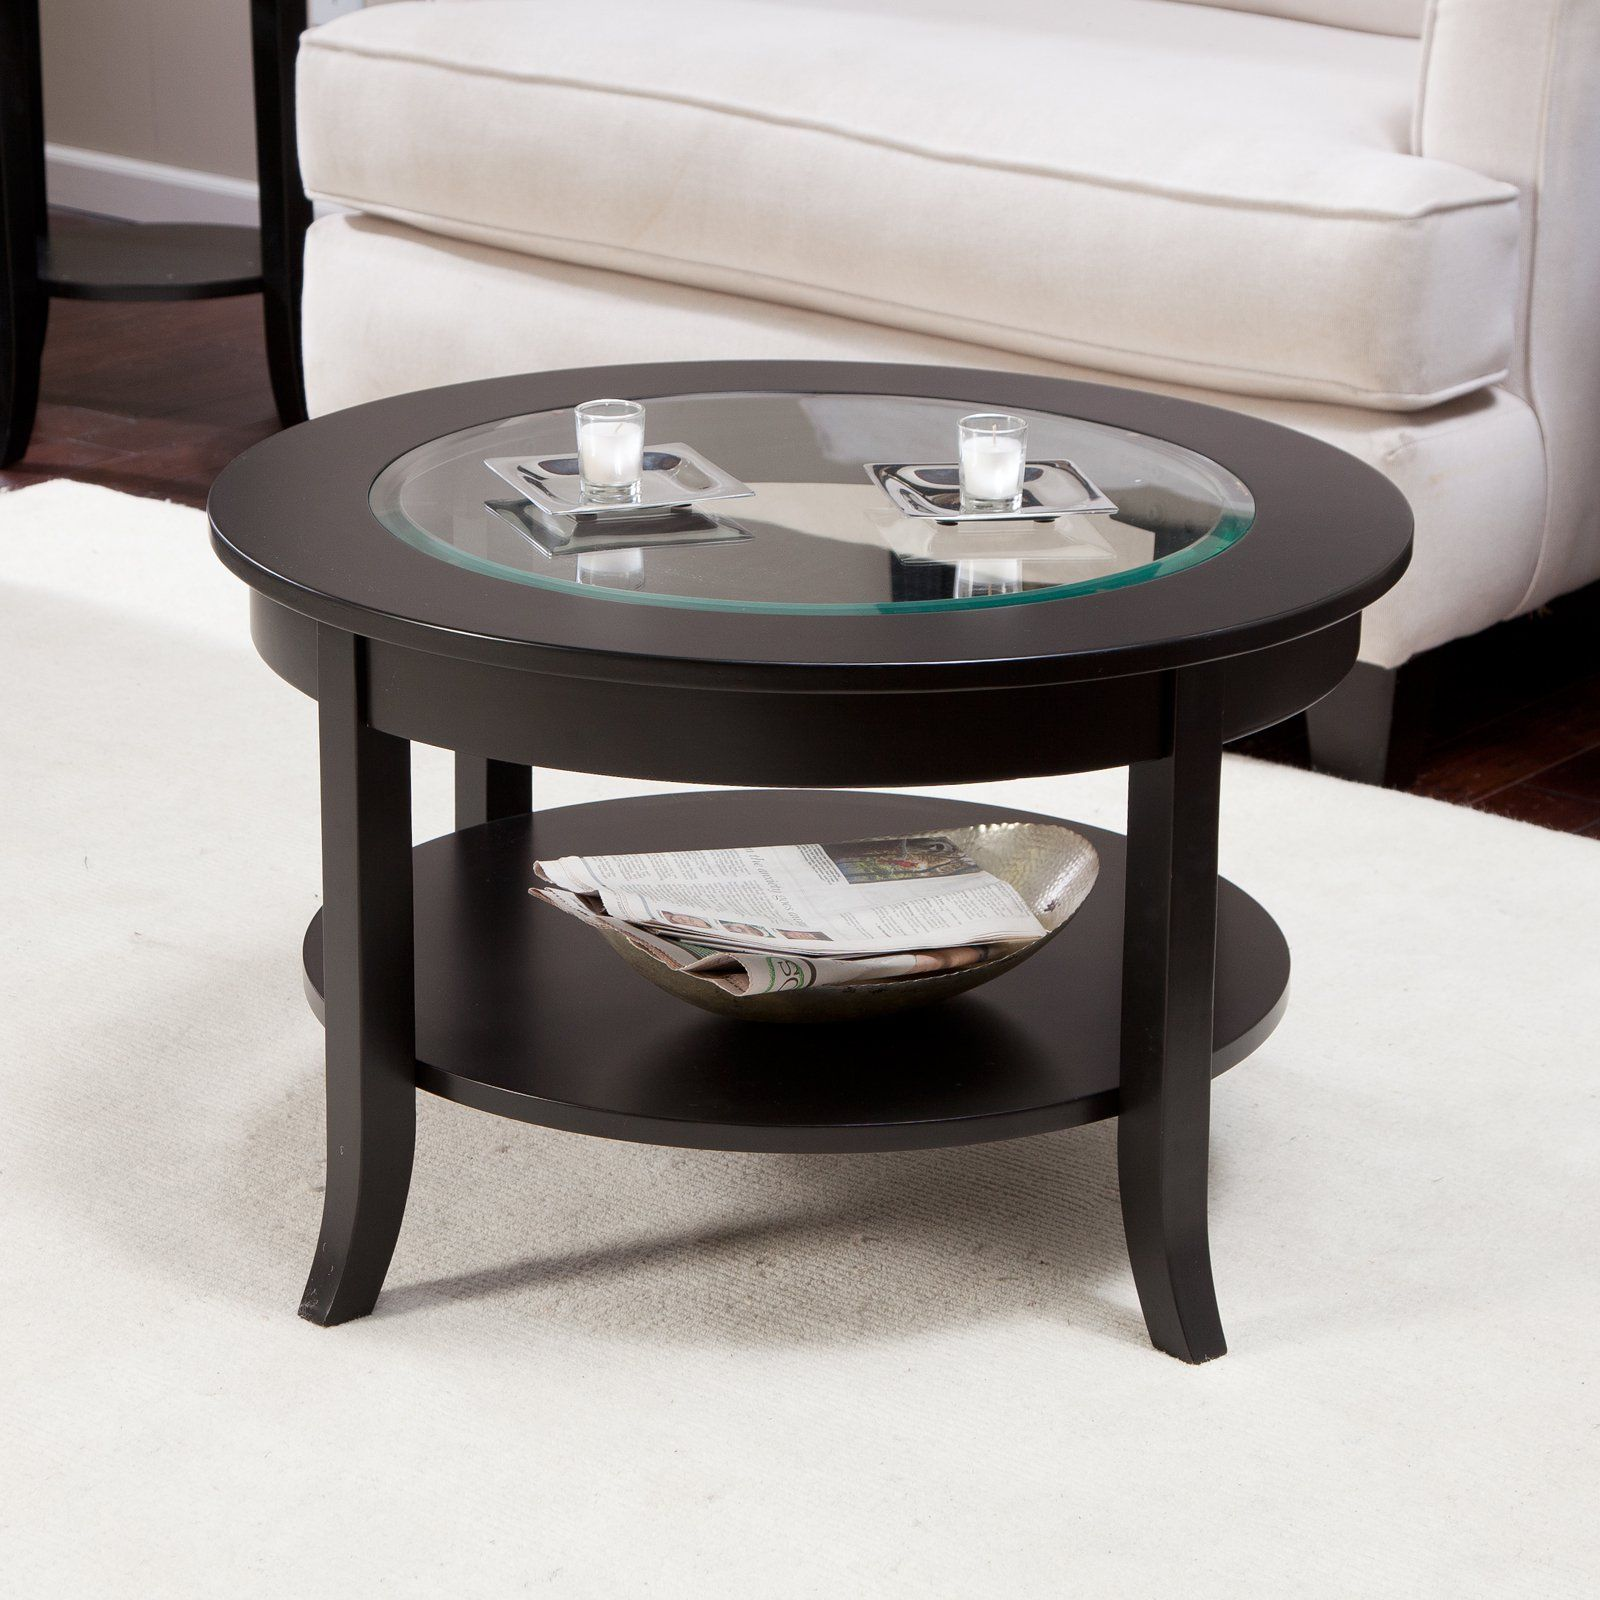 5 Ideas For A Do-It-Yourself Coffee Table, Let\'s Do It!